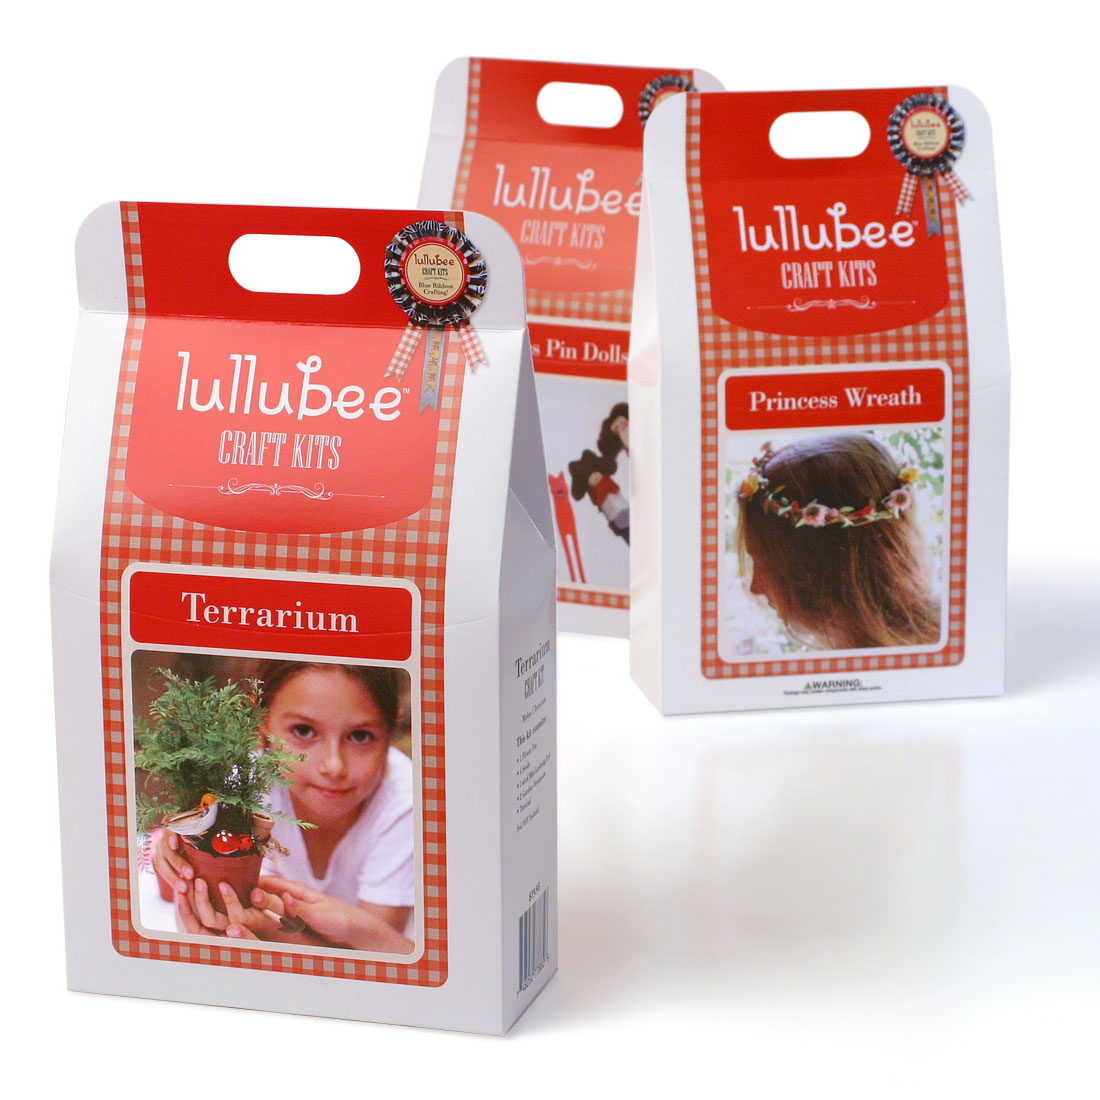 Lullubee Craft Kit Packages